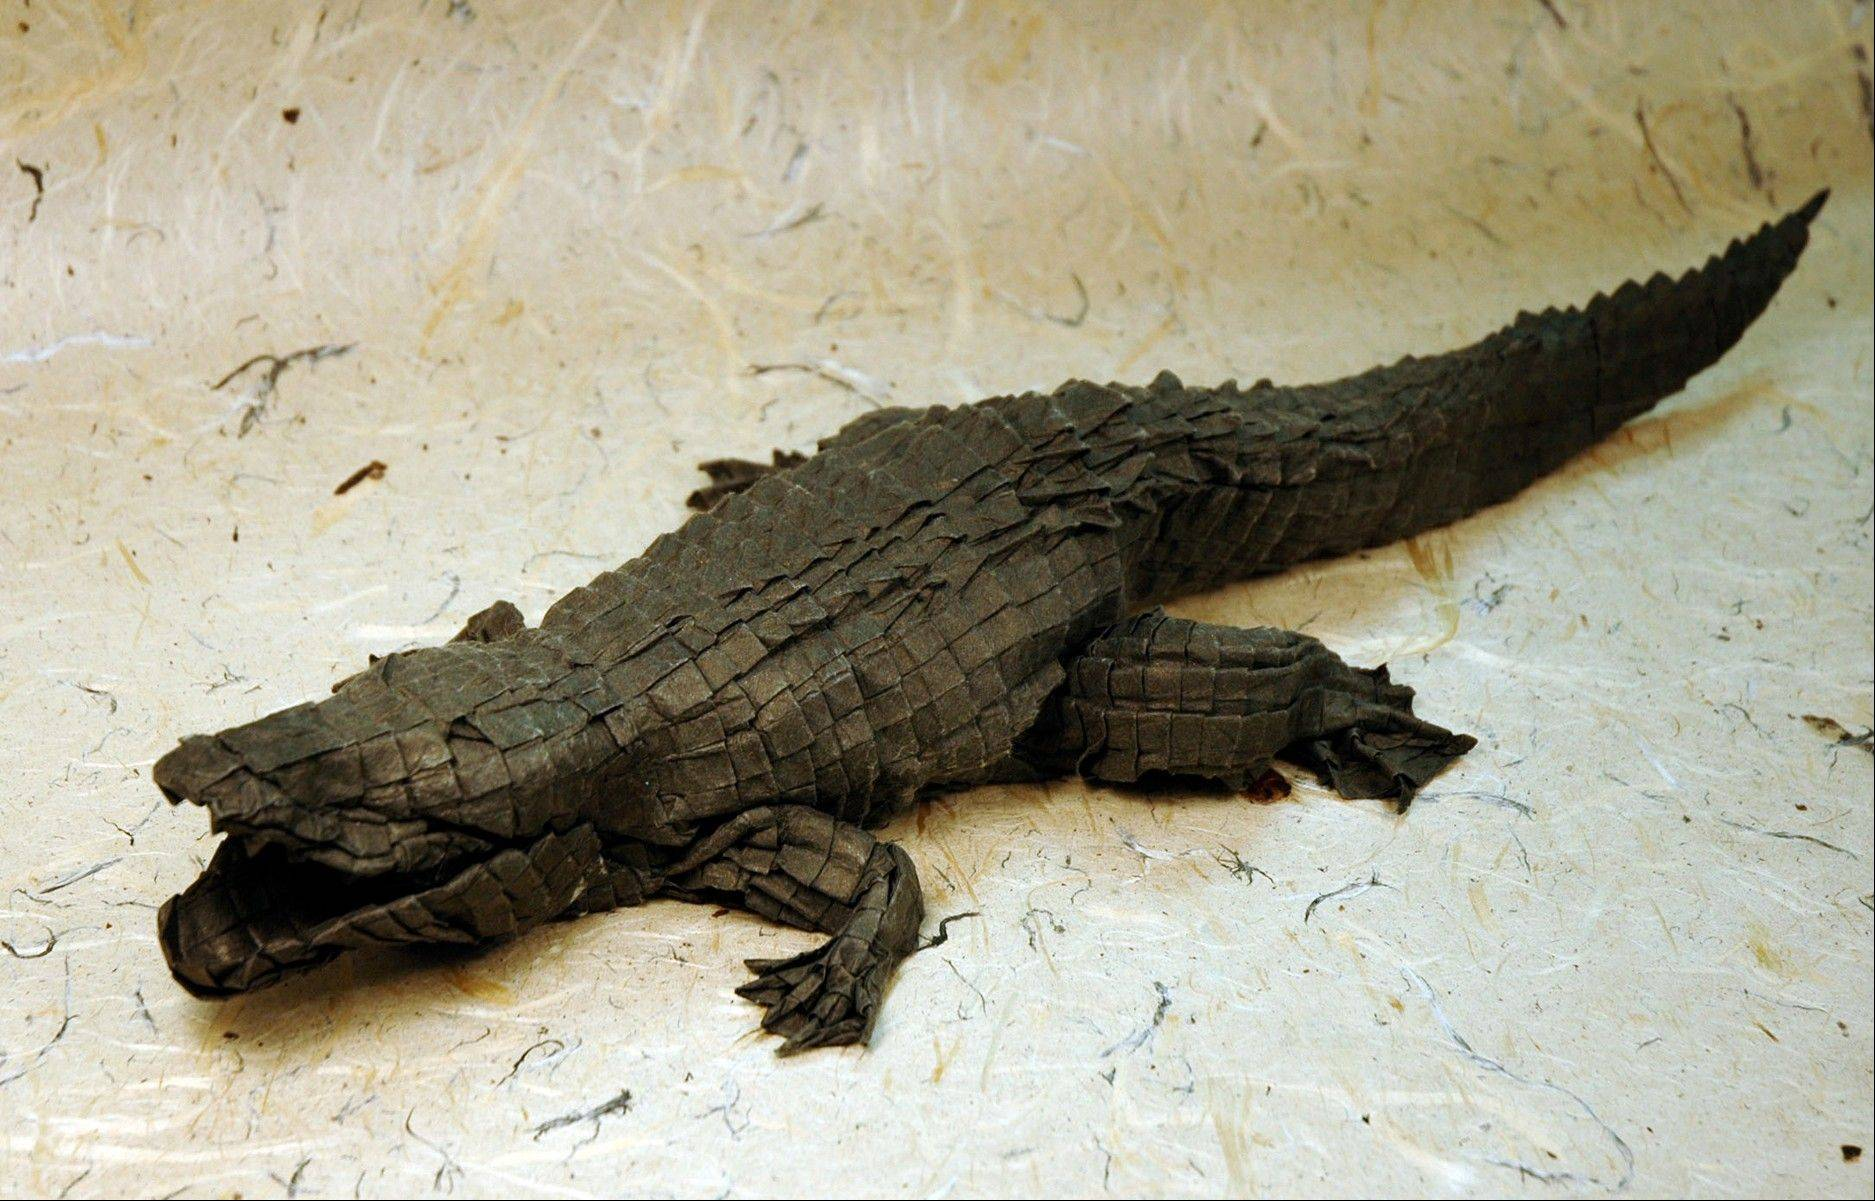 An origami model of an alligator designed by Micheal G. LaFosse is 18 inches long.